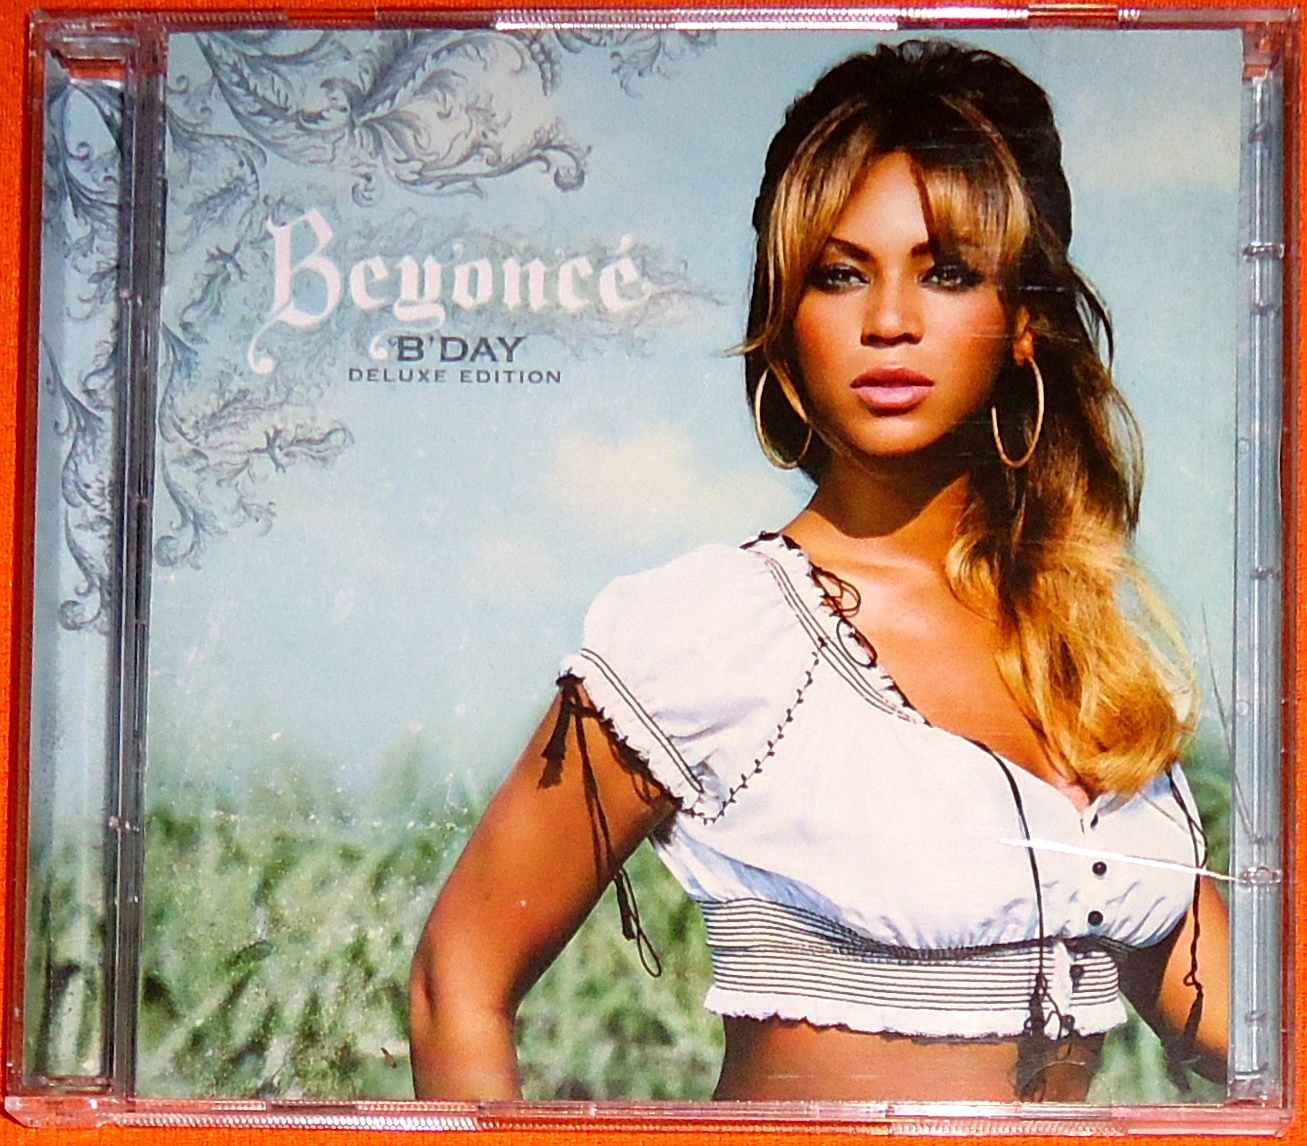 Beyoncé Deluxe Beyoncé: My Collection: Beyoncé » B'Day (Deluxe Edition) (CD+DVD